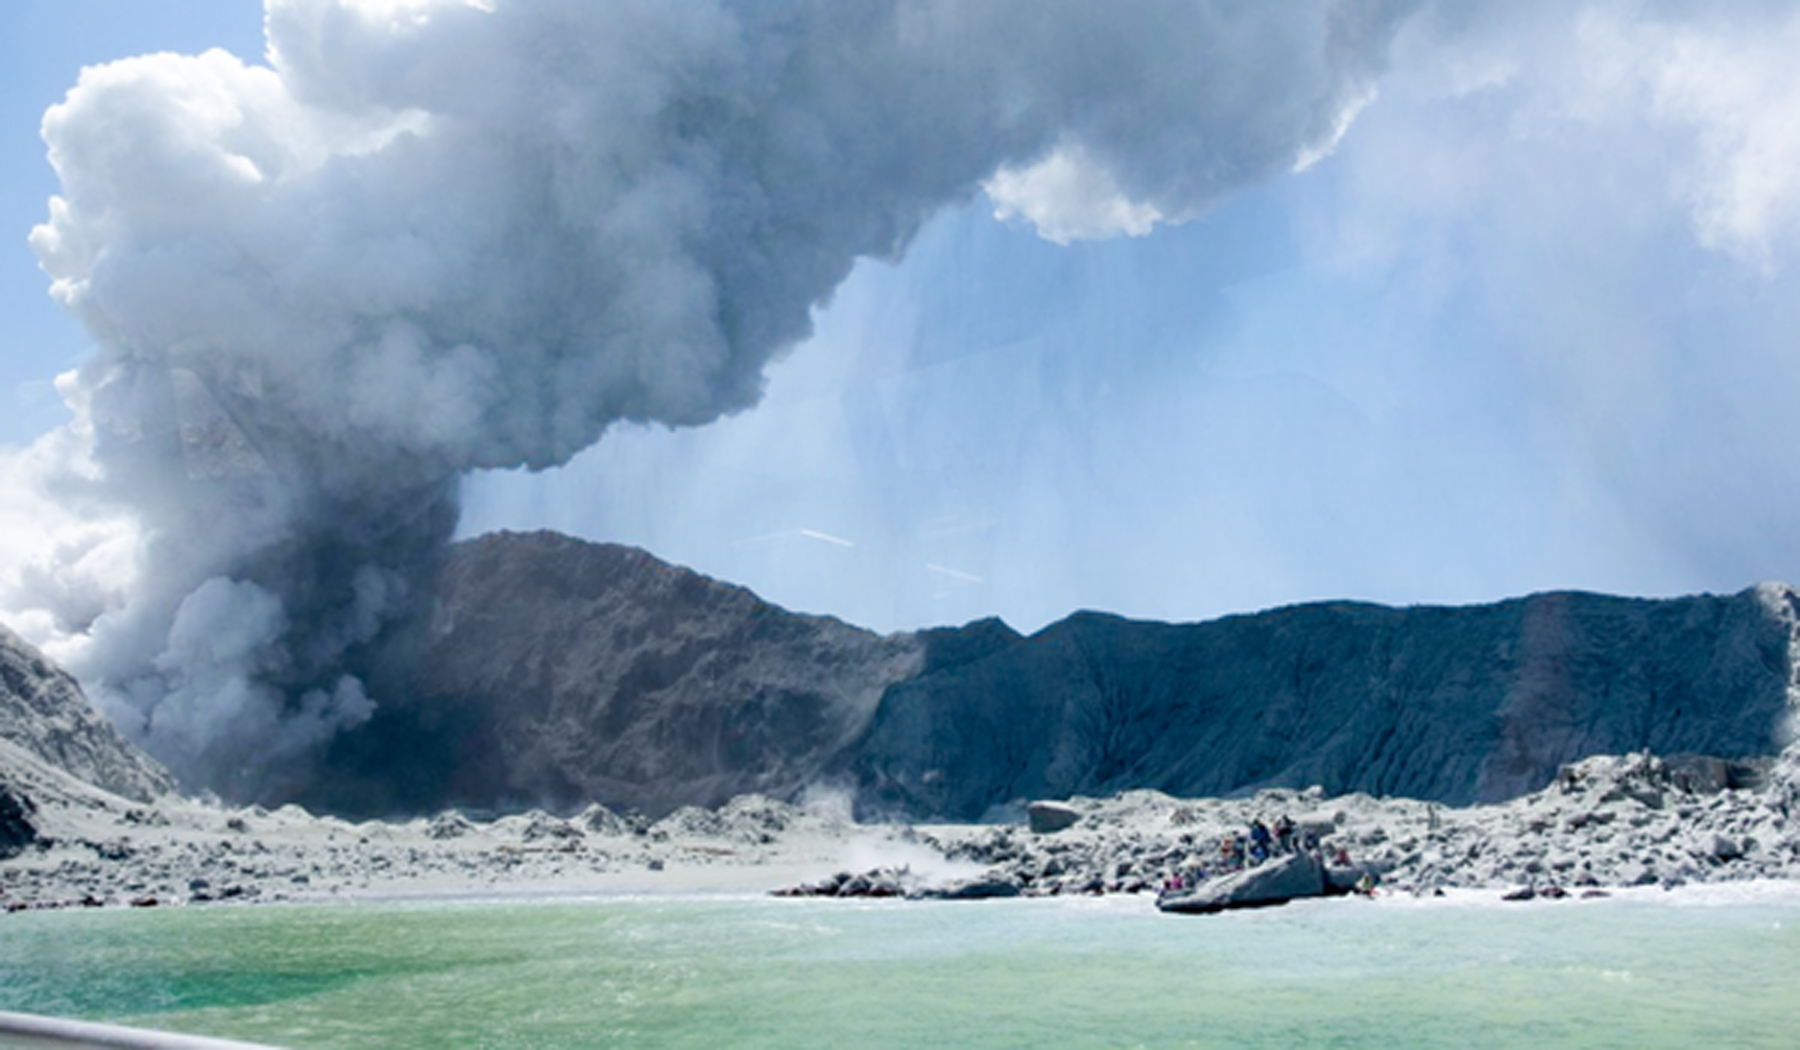 (191209) -- WHITE ISLAND (NEW ZEALAND), Dec. 10, 2019 (Xinhua) -- Photo taken on Dec. 9, 2019 shows the heavy smoke from volcanic eruption at New Zealand's White Island. Five people were confirmed dead in a volcanic eruption in New Zealand's White Island in the Eastern Bay of Plenty of the North Island on Monday, with more casualties likely, the police said. (Photo provided by Michael Schade/Handout via Xinhua)